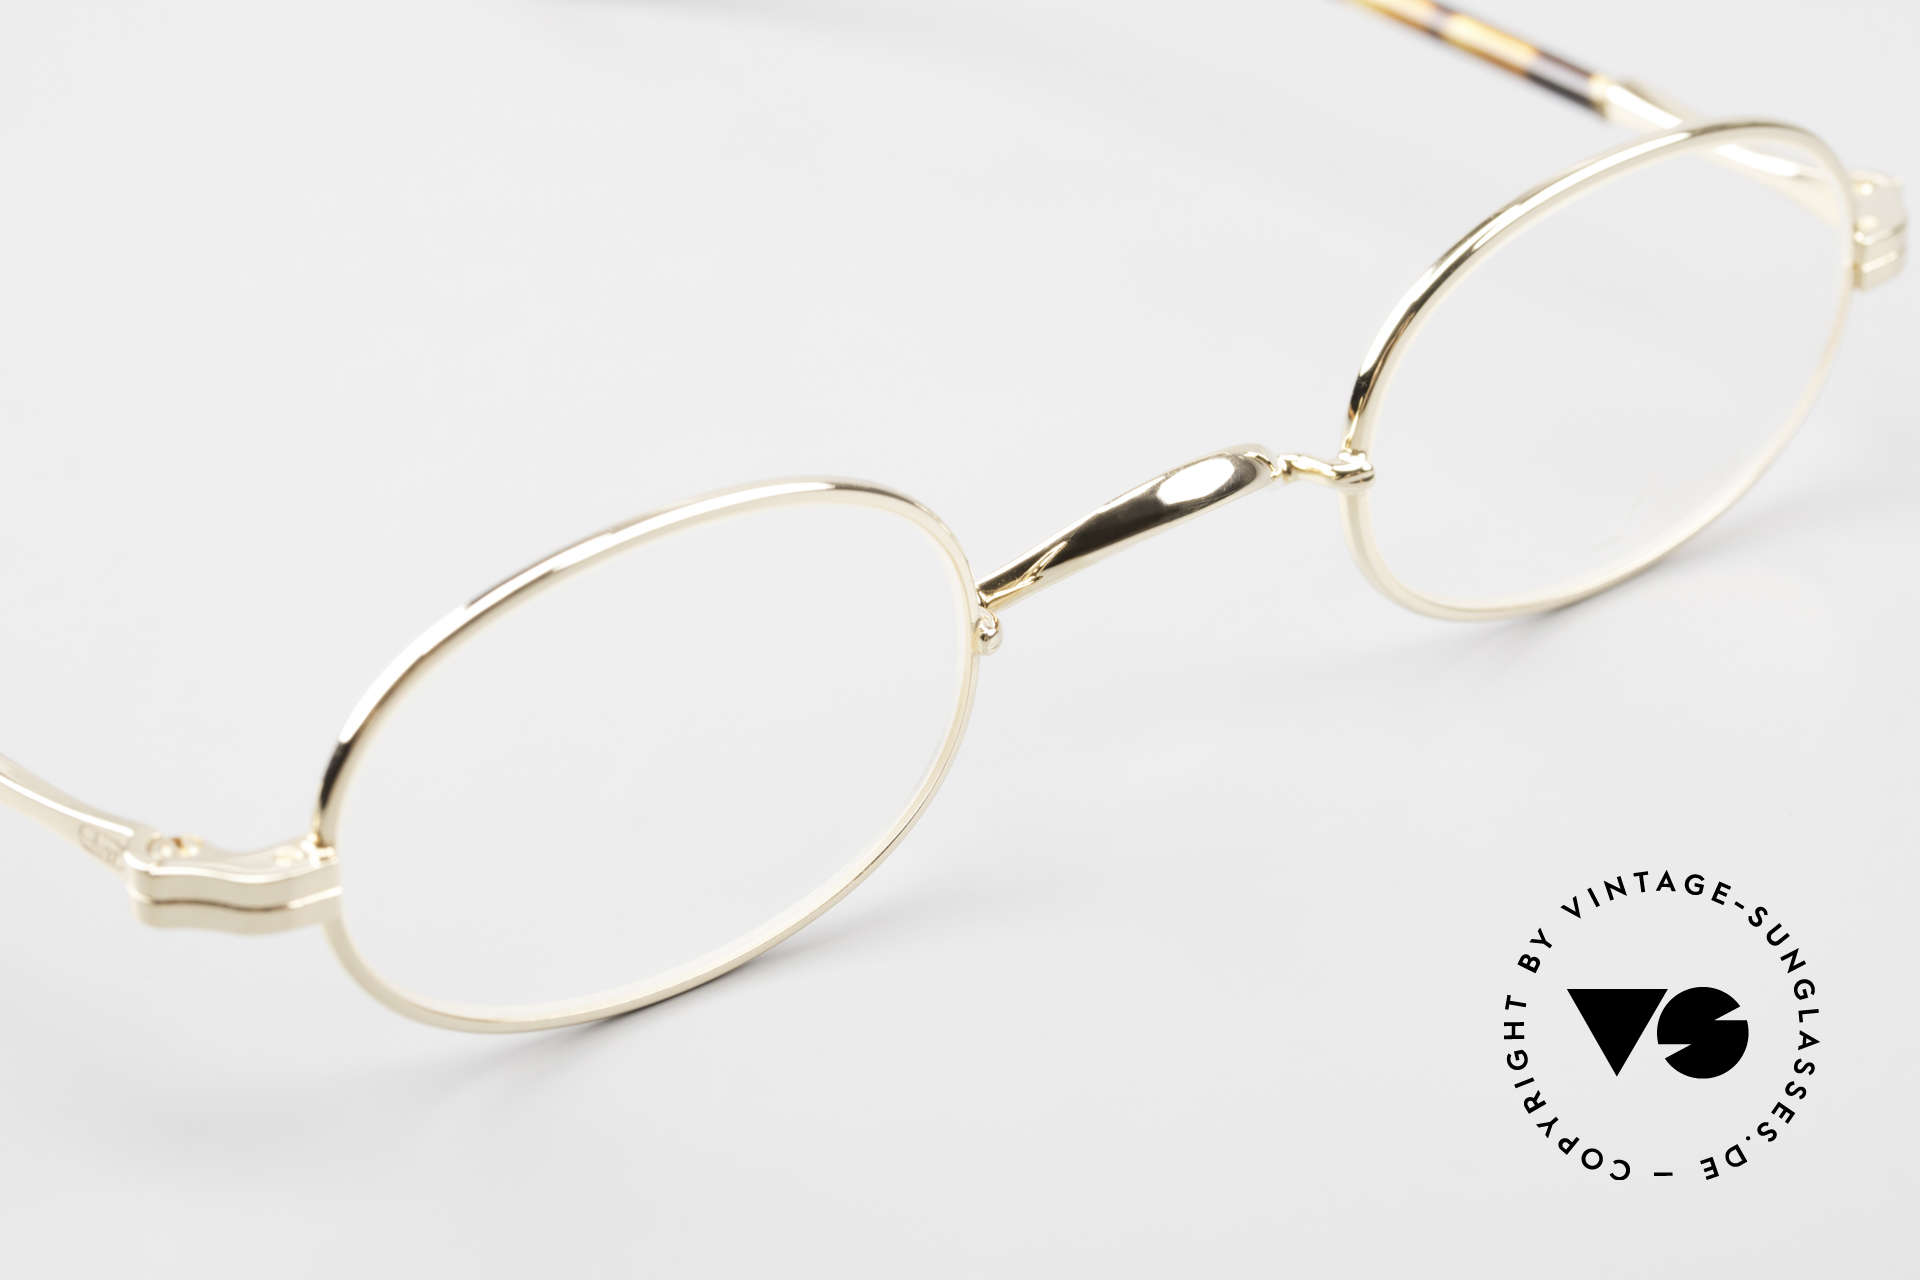 Lunor II A 08 Small Oval Glasses Gold Plated, unworn RARITY (for all lovers of quality) from app. 1998, Made for Men and Women